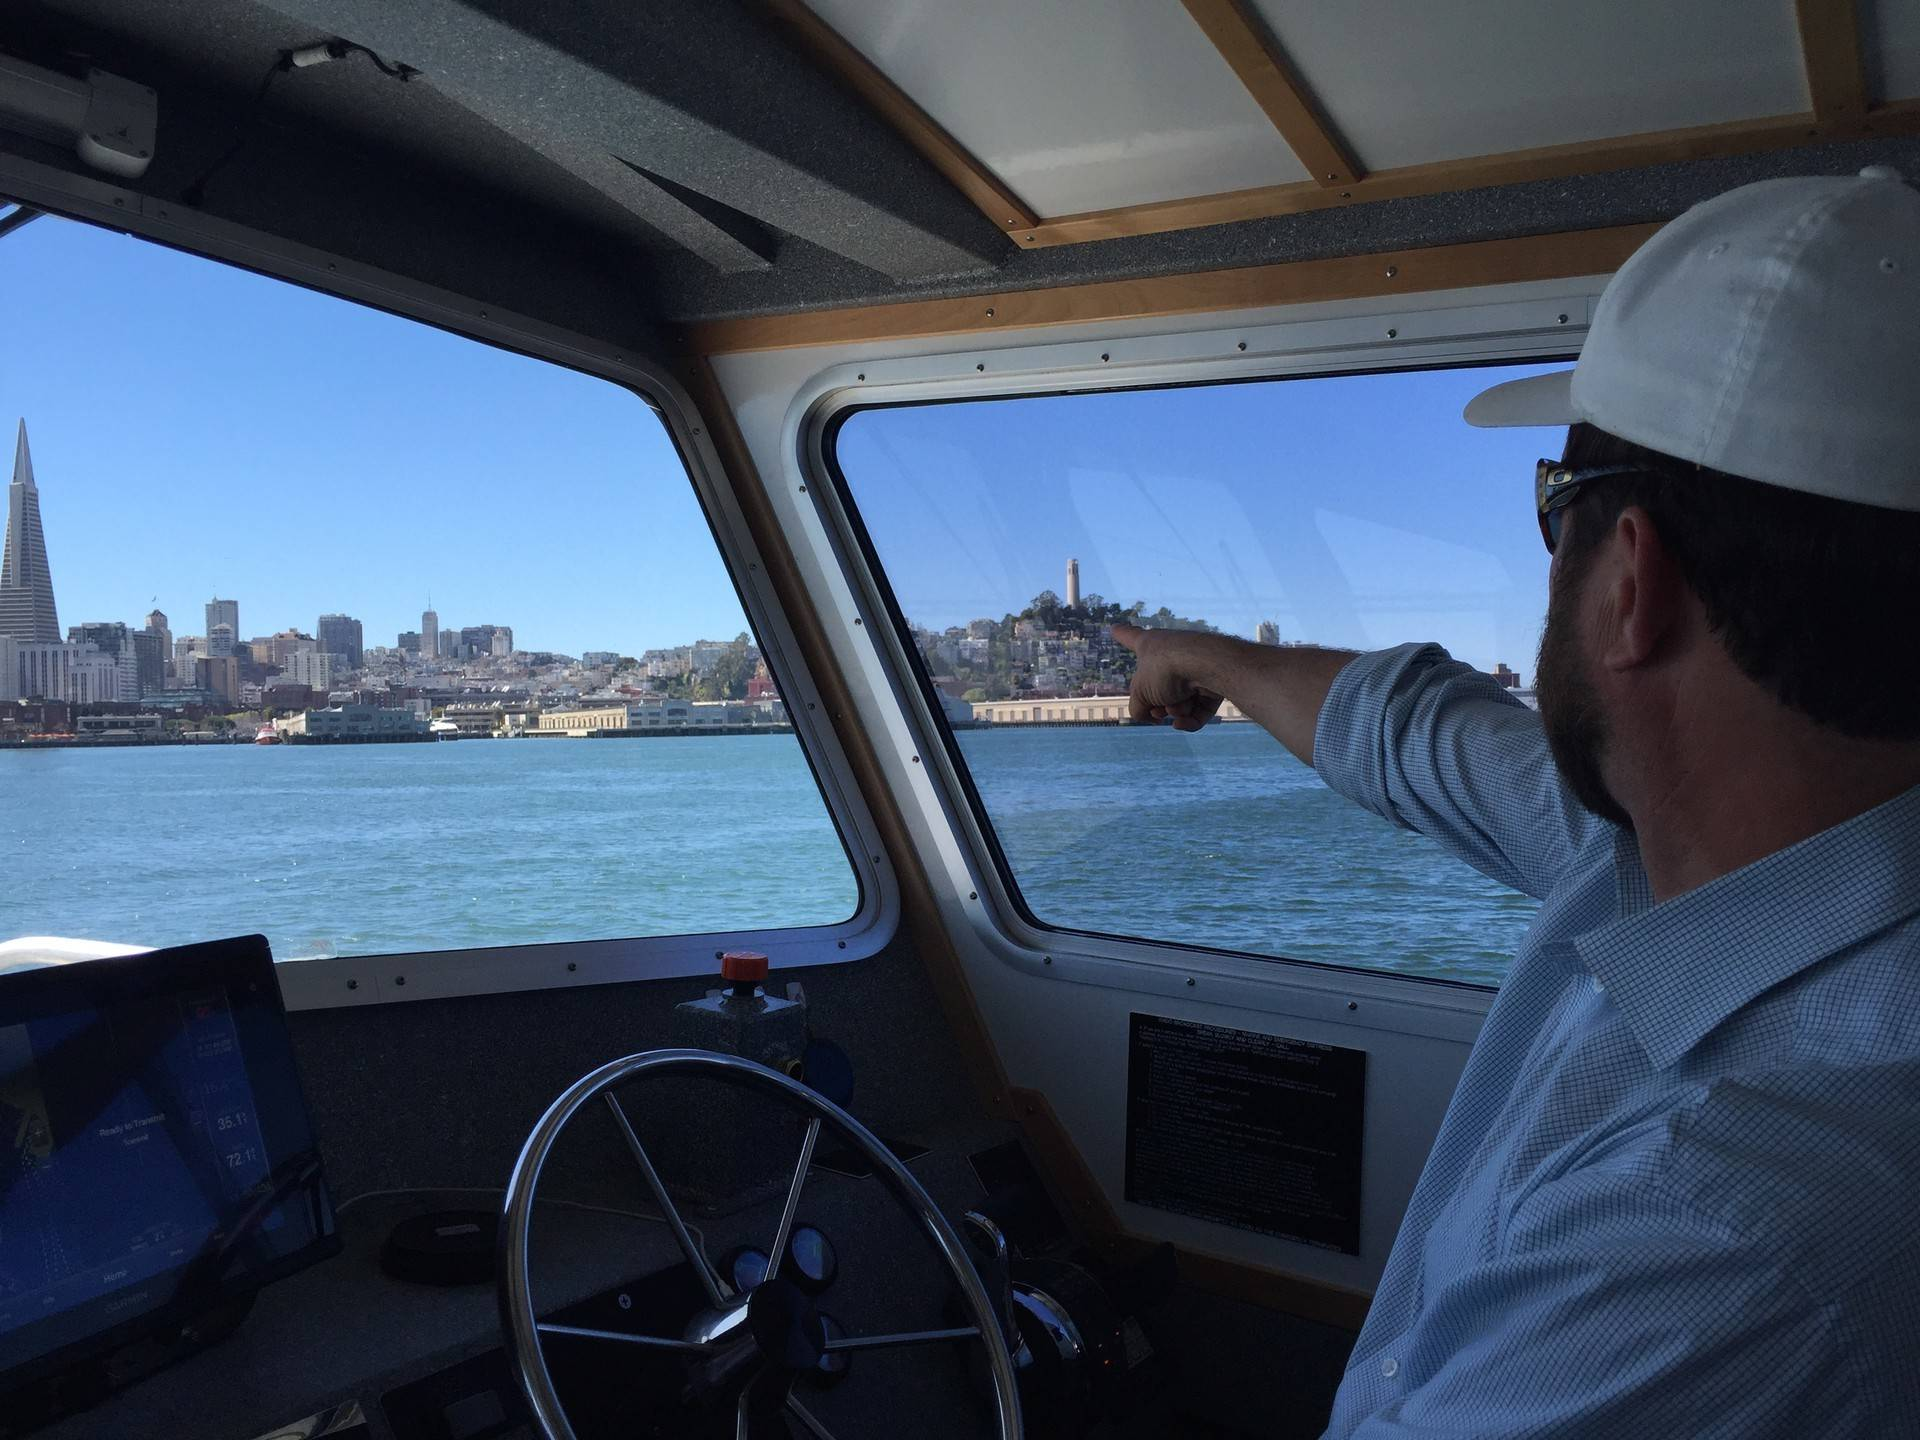 James Jaber is the head of Prop SF, a private company which ferries workers from San Francisco to Redwood City.